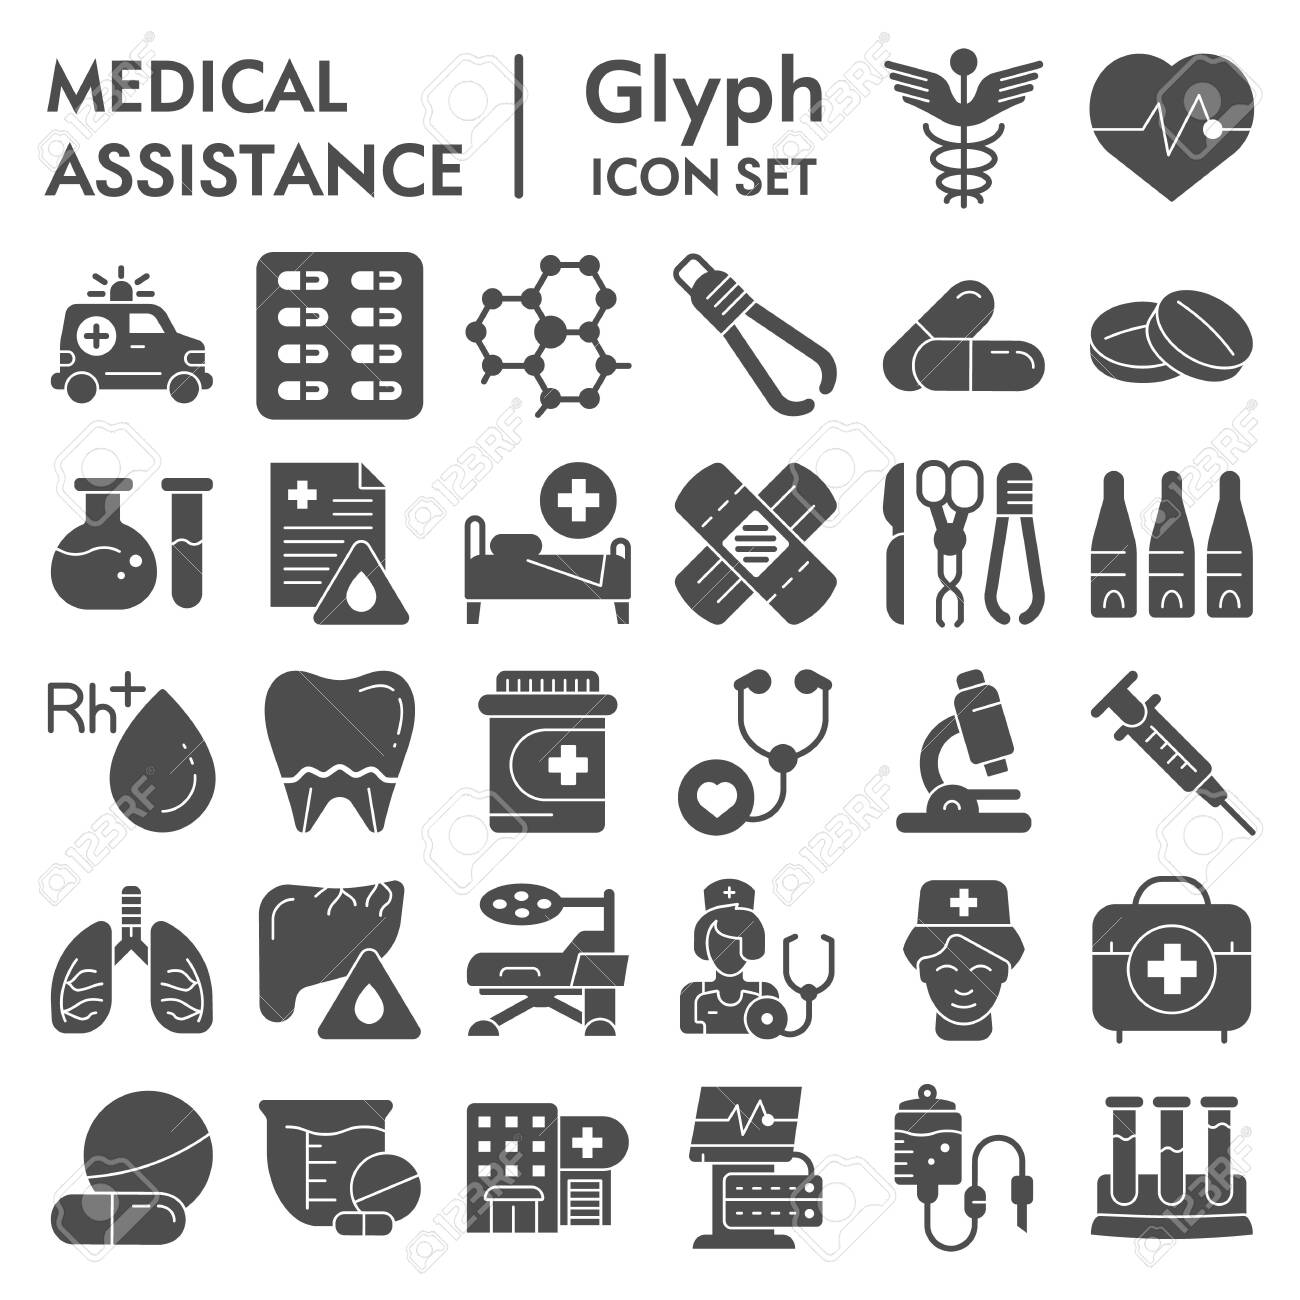 Medical assistance glyph icon set, healthcare symbols collection, vector sketches, illustrations, medicine equipment signs solid pictograms package isolated on white background, eps 10. - 132066883